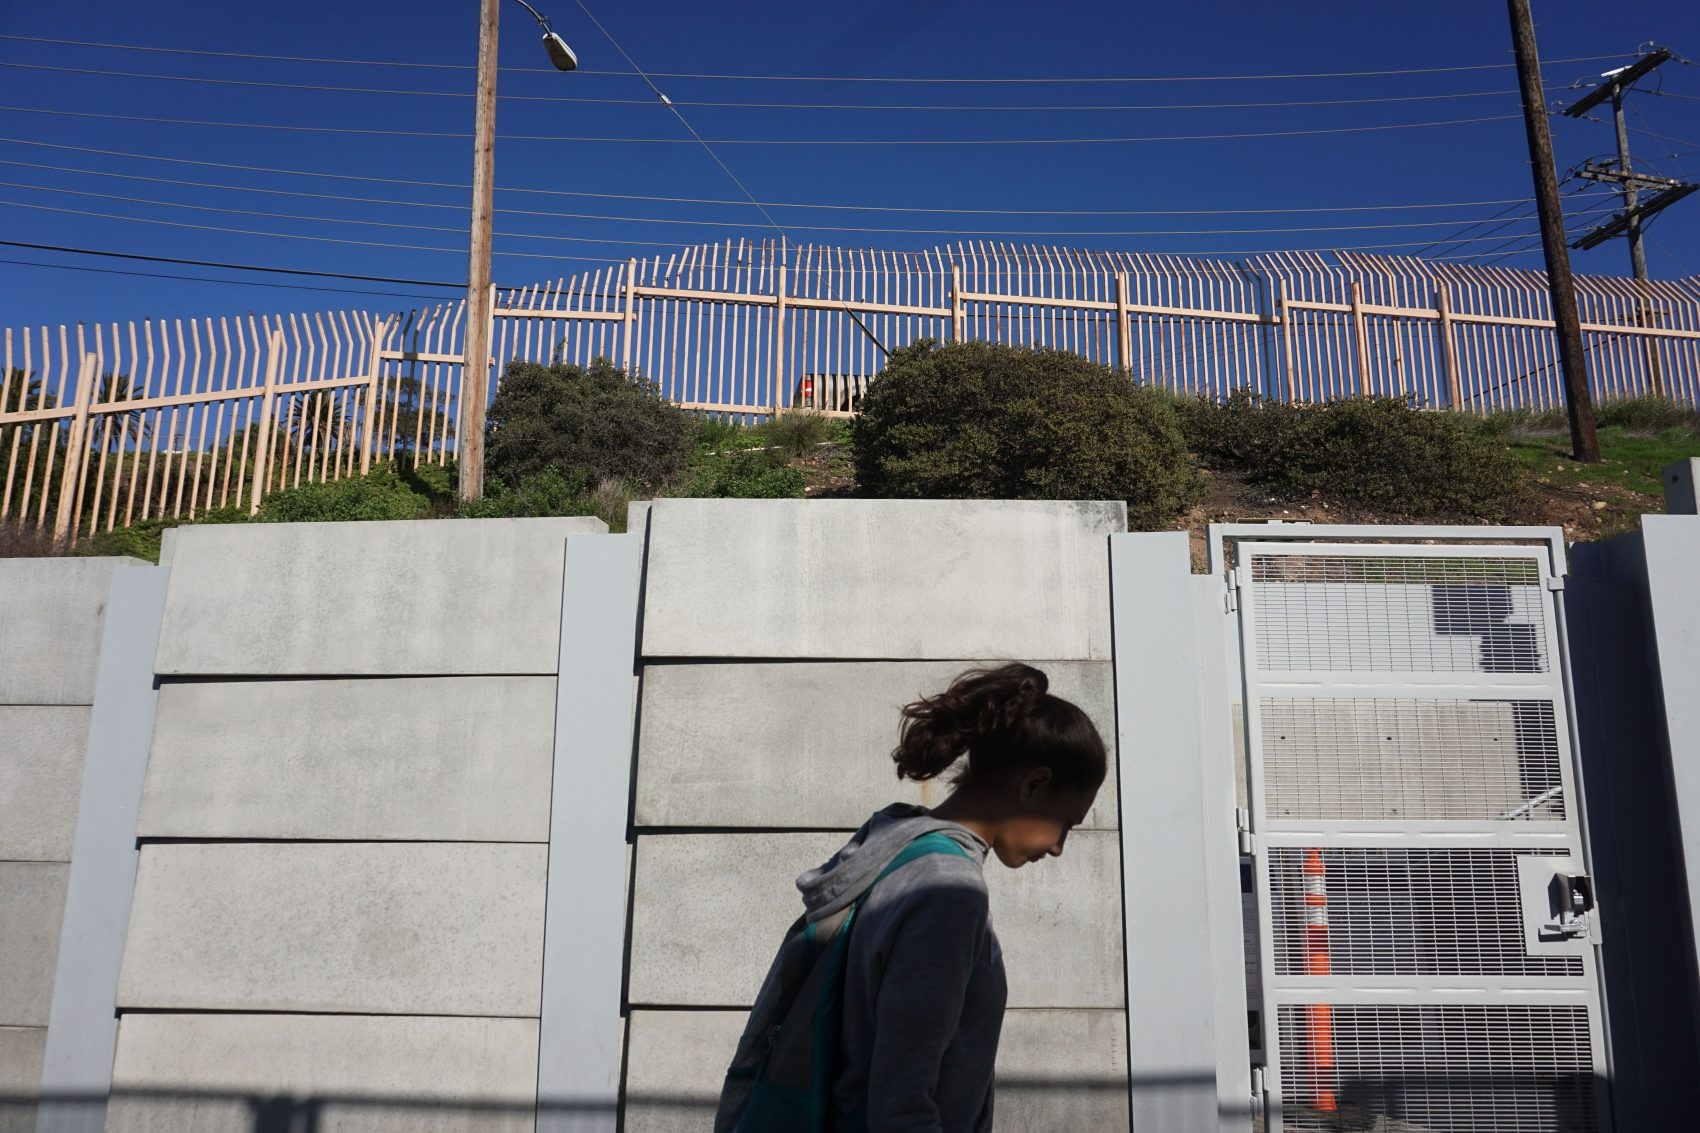 A view of the U.S.-Mexico border wall on Jan. 25, 2017 in San Ysidro, Calif. (Sandy Huffaker/Getty Images)